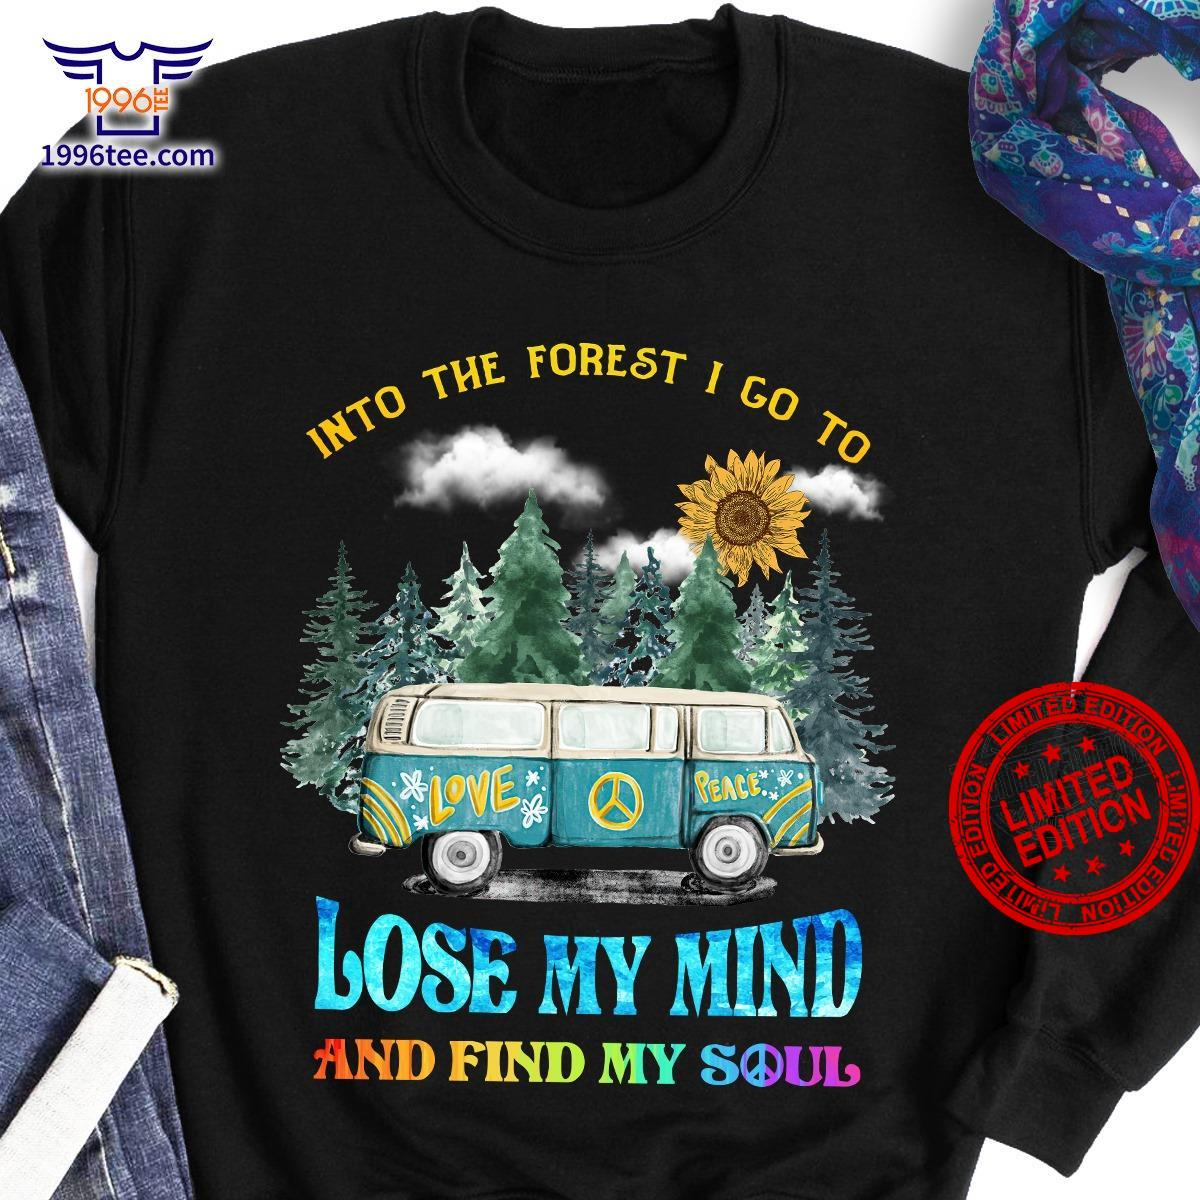 Into The Forest I Go To Love Peace Lose My Mind And Find My Soul Shirt